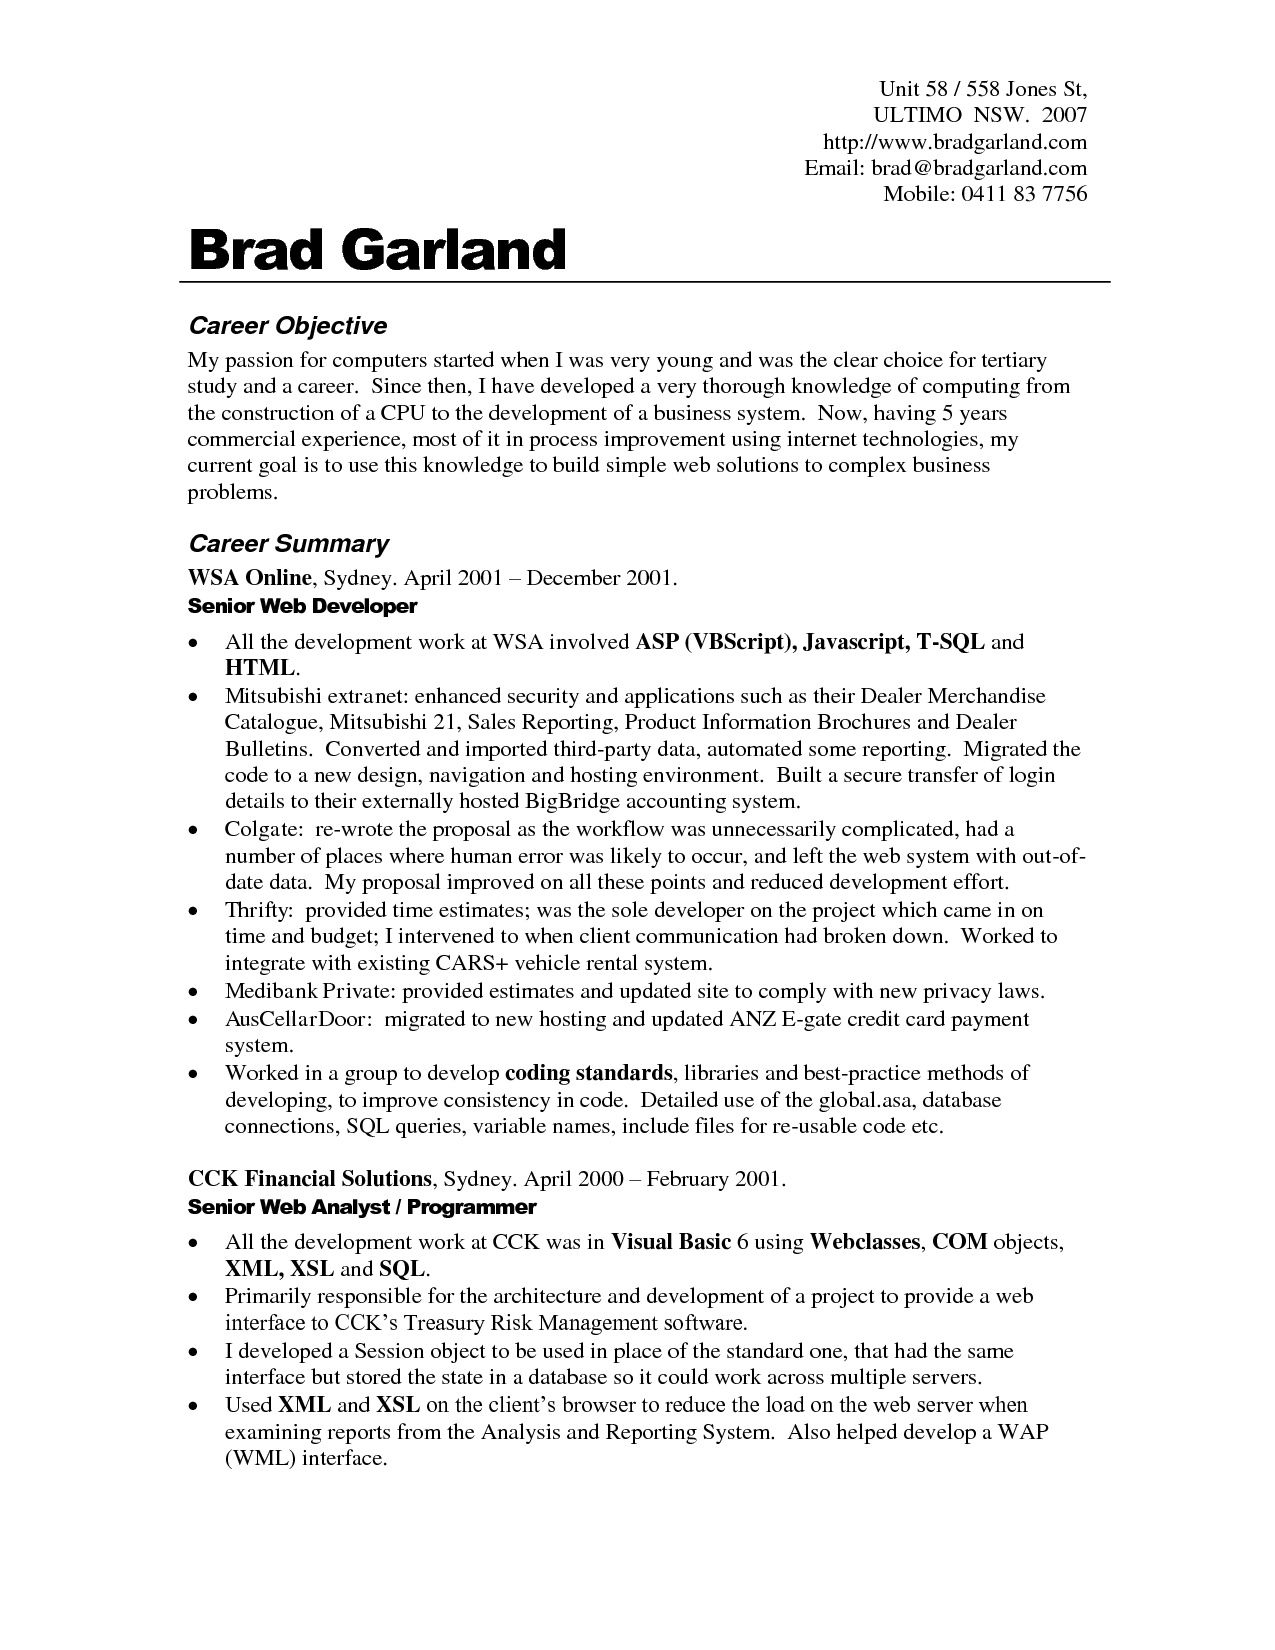 resume samples career objective - Objective Of Resume Sample